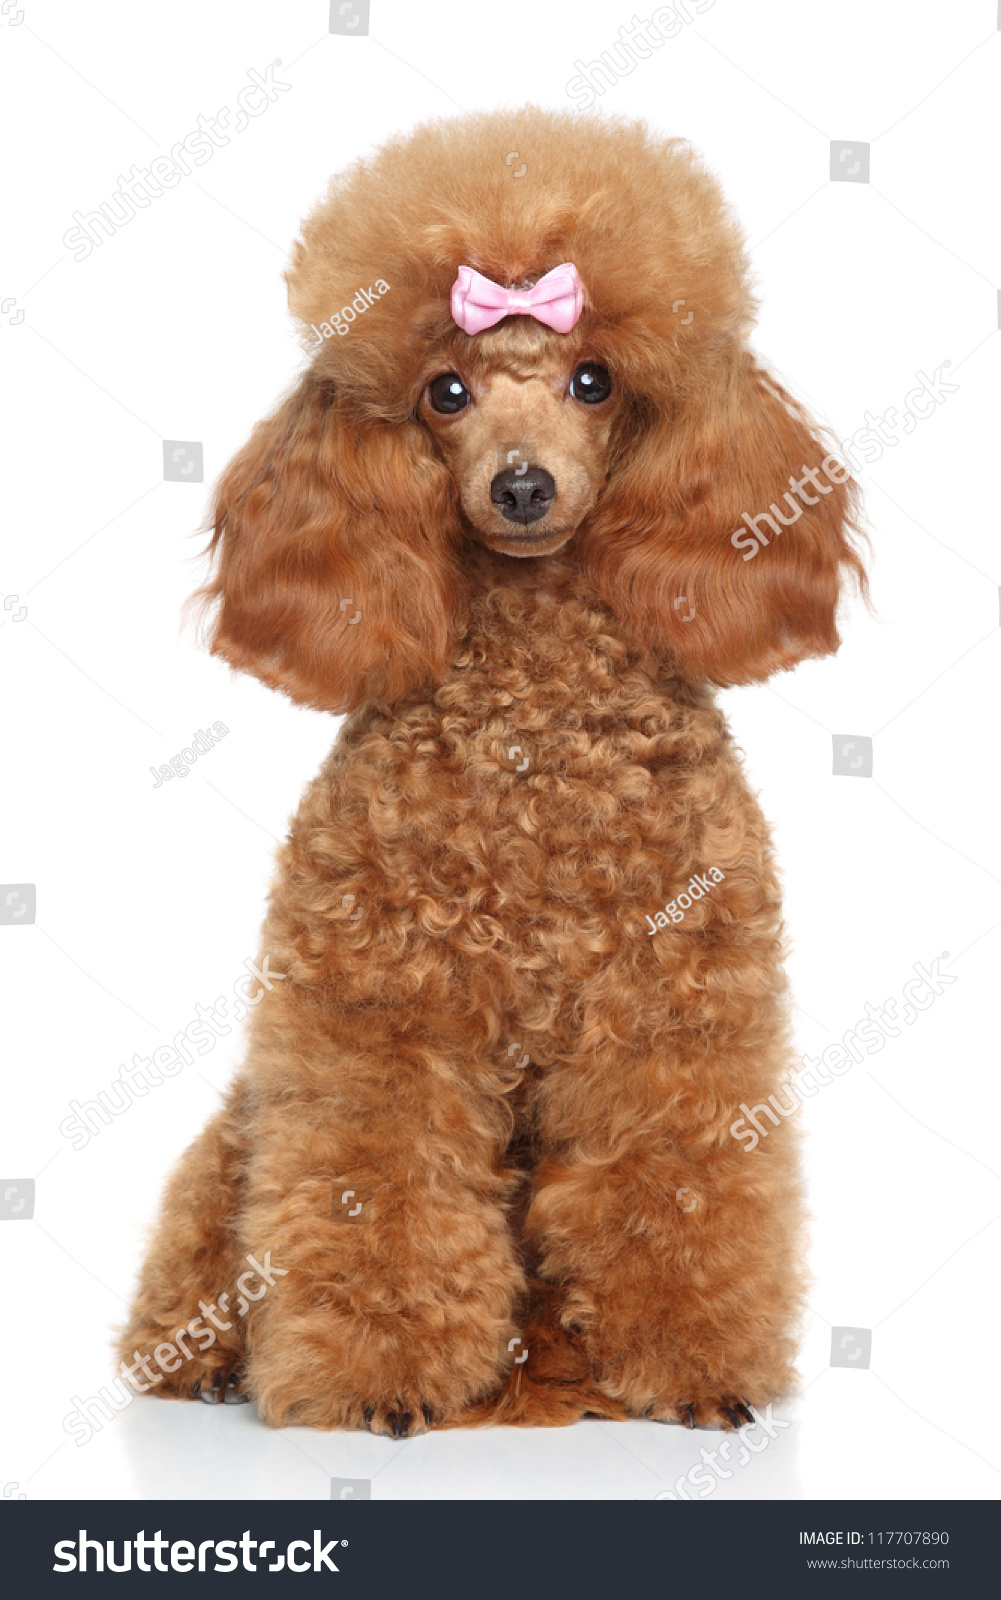 Red Toy Dogs : Red toy poodle puppy sits on stock photo